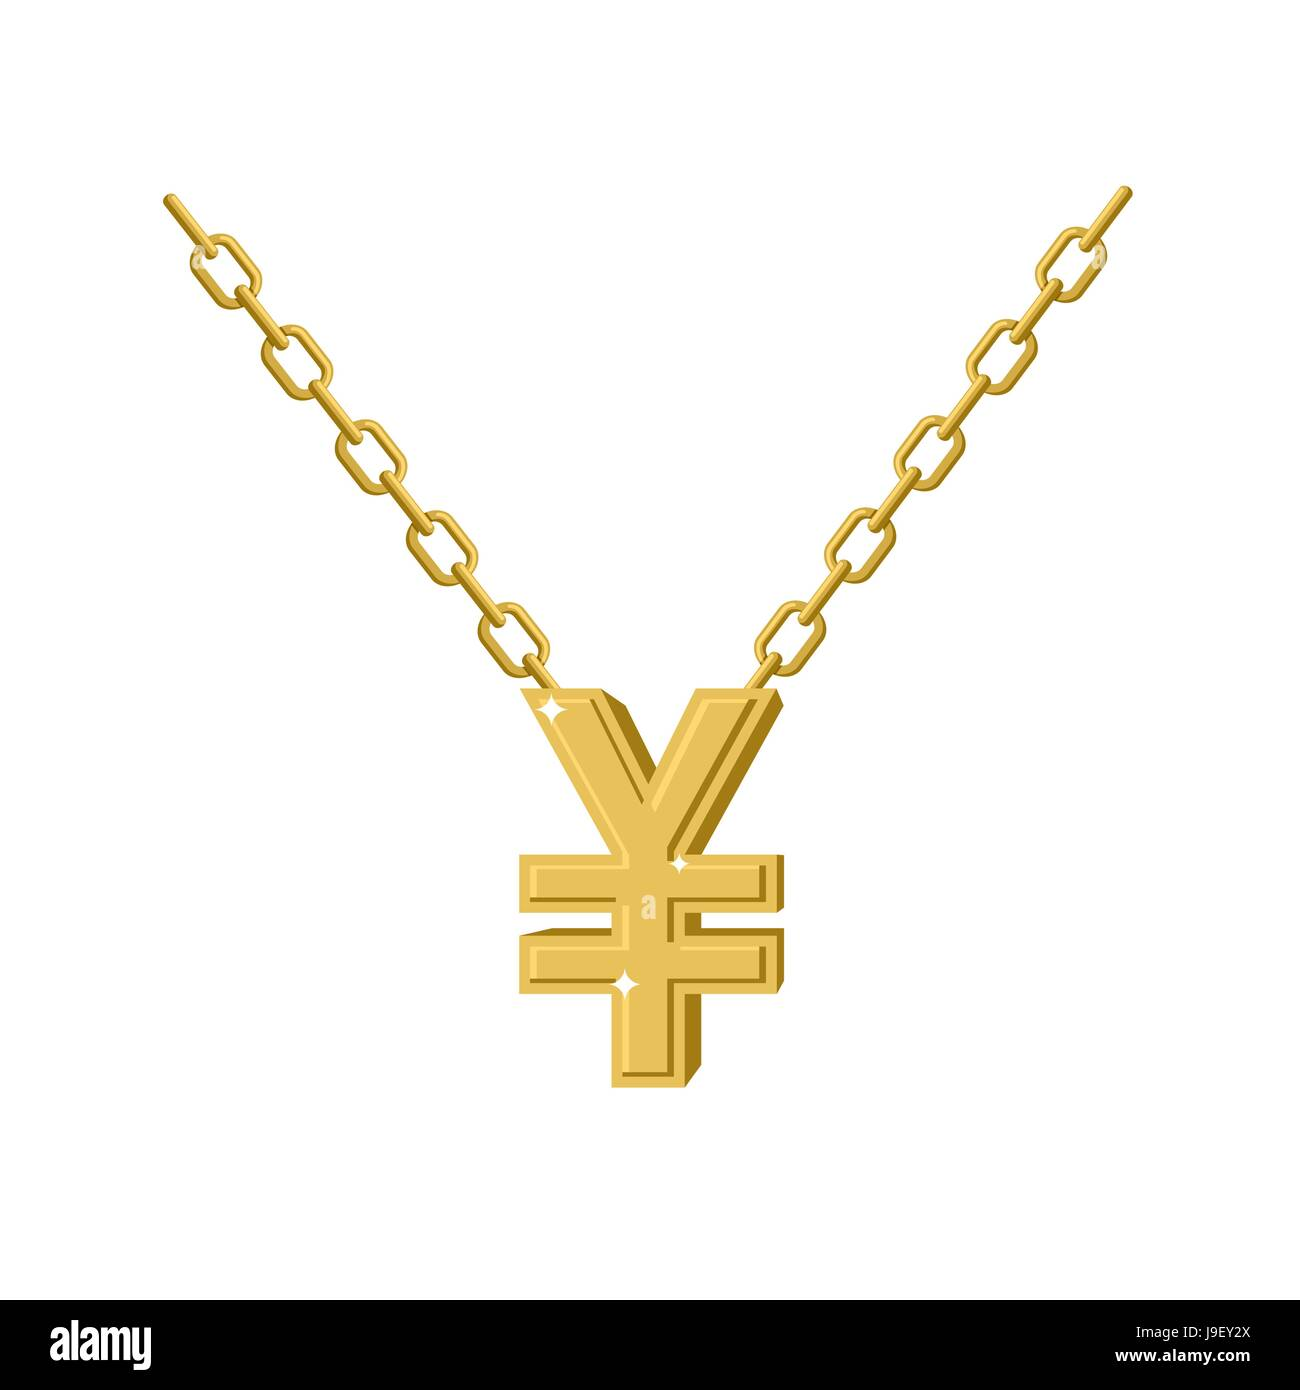 yellow metal wild lion pendant necklace jewelry gold of golden chain animal fa photo stock expensive on vector precious